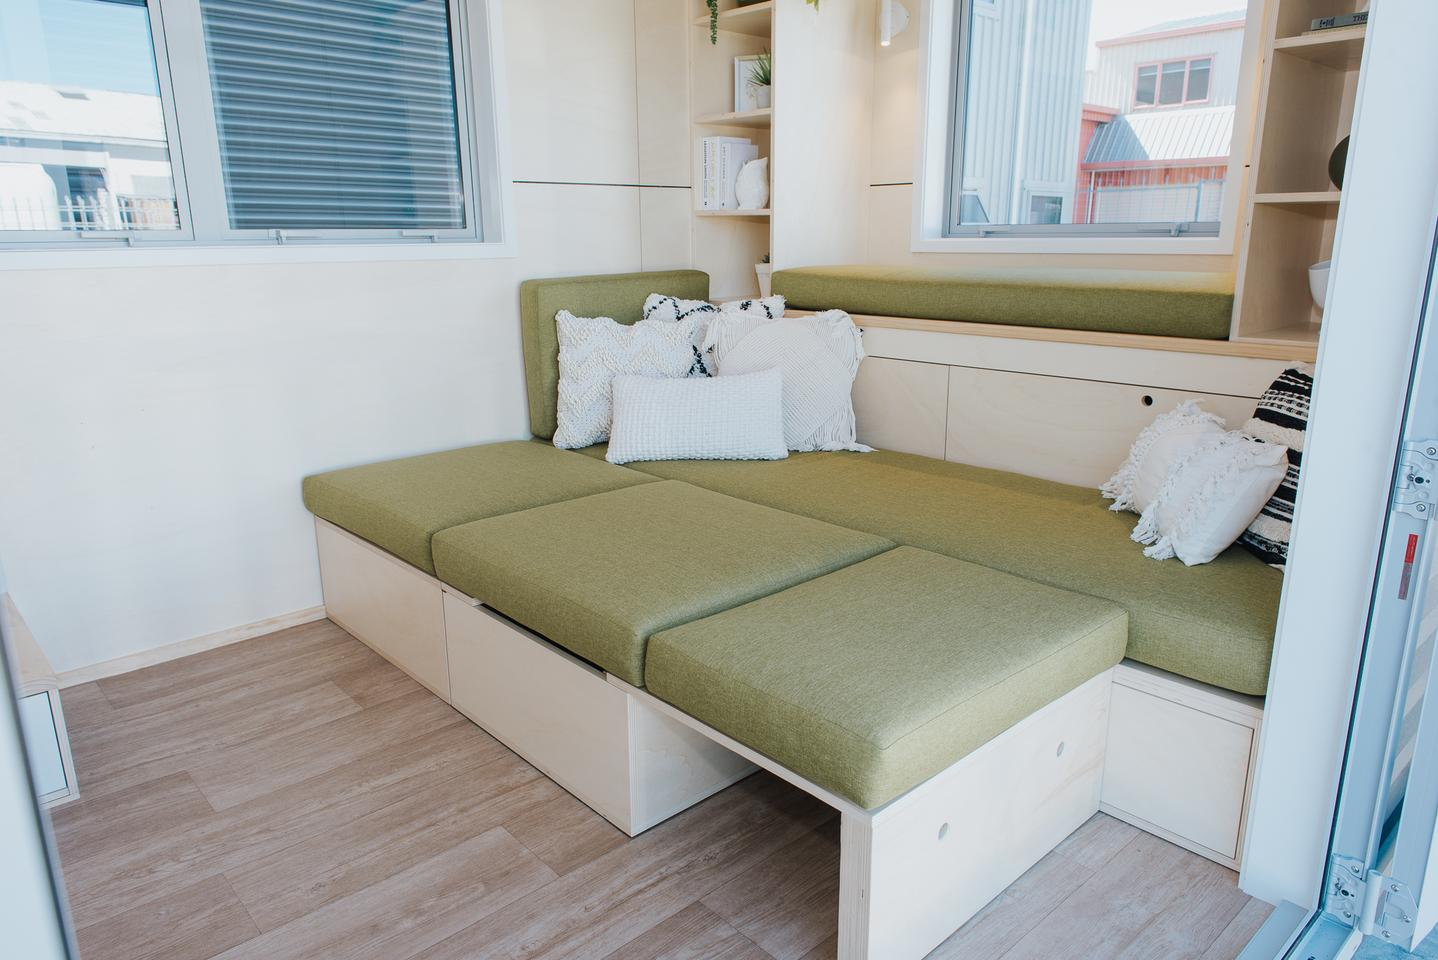 The Wai-Iti Tiny House's sofa converts into a double bed for guests